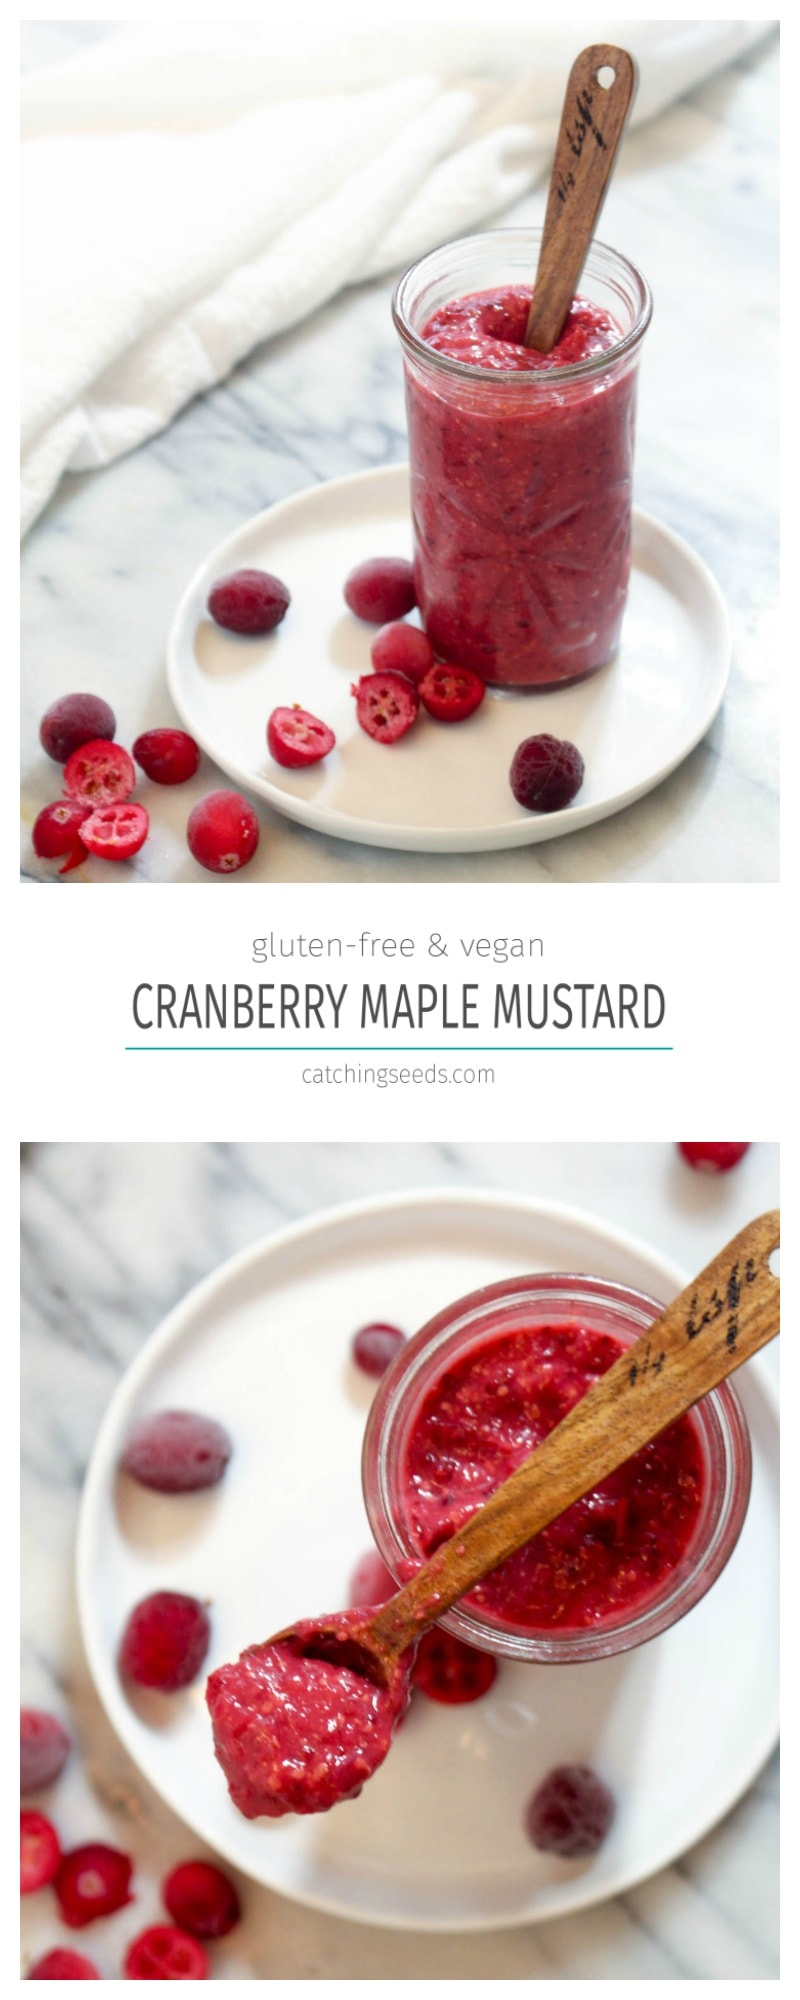 This easy 4 ingredient recipe for Cranberry Maple Mustard was made in condiment heaven. | Catching Seeds